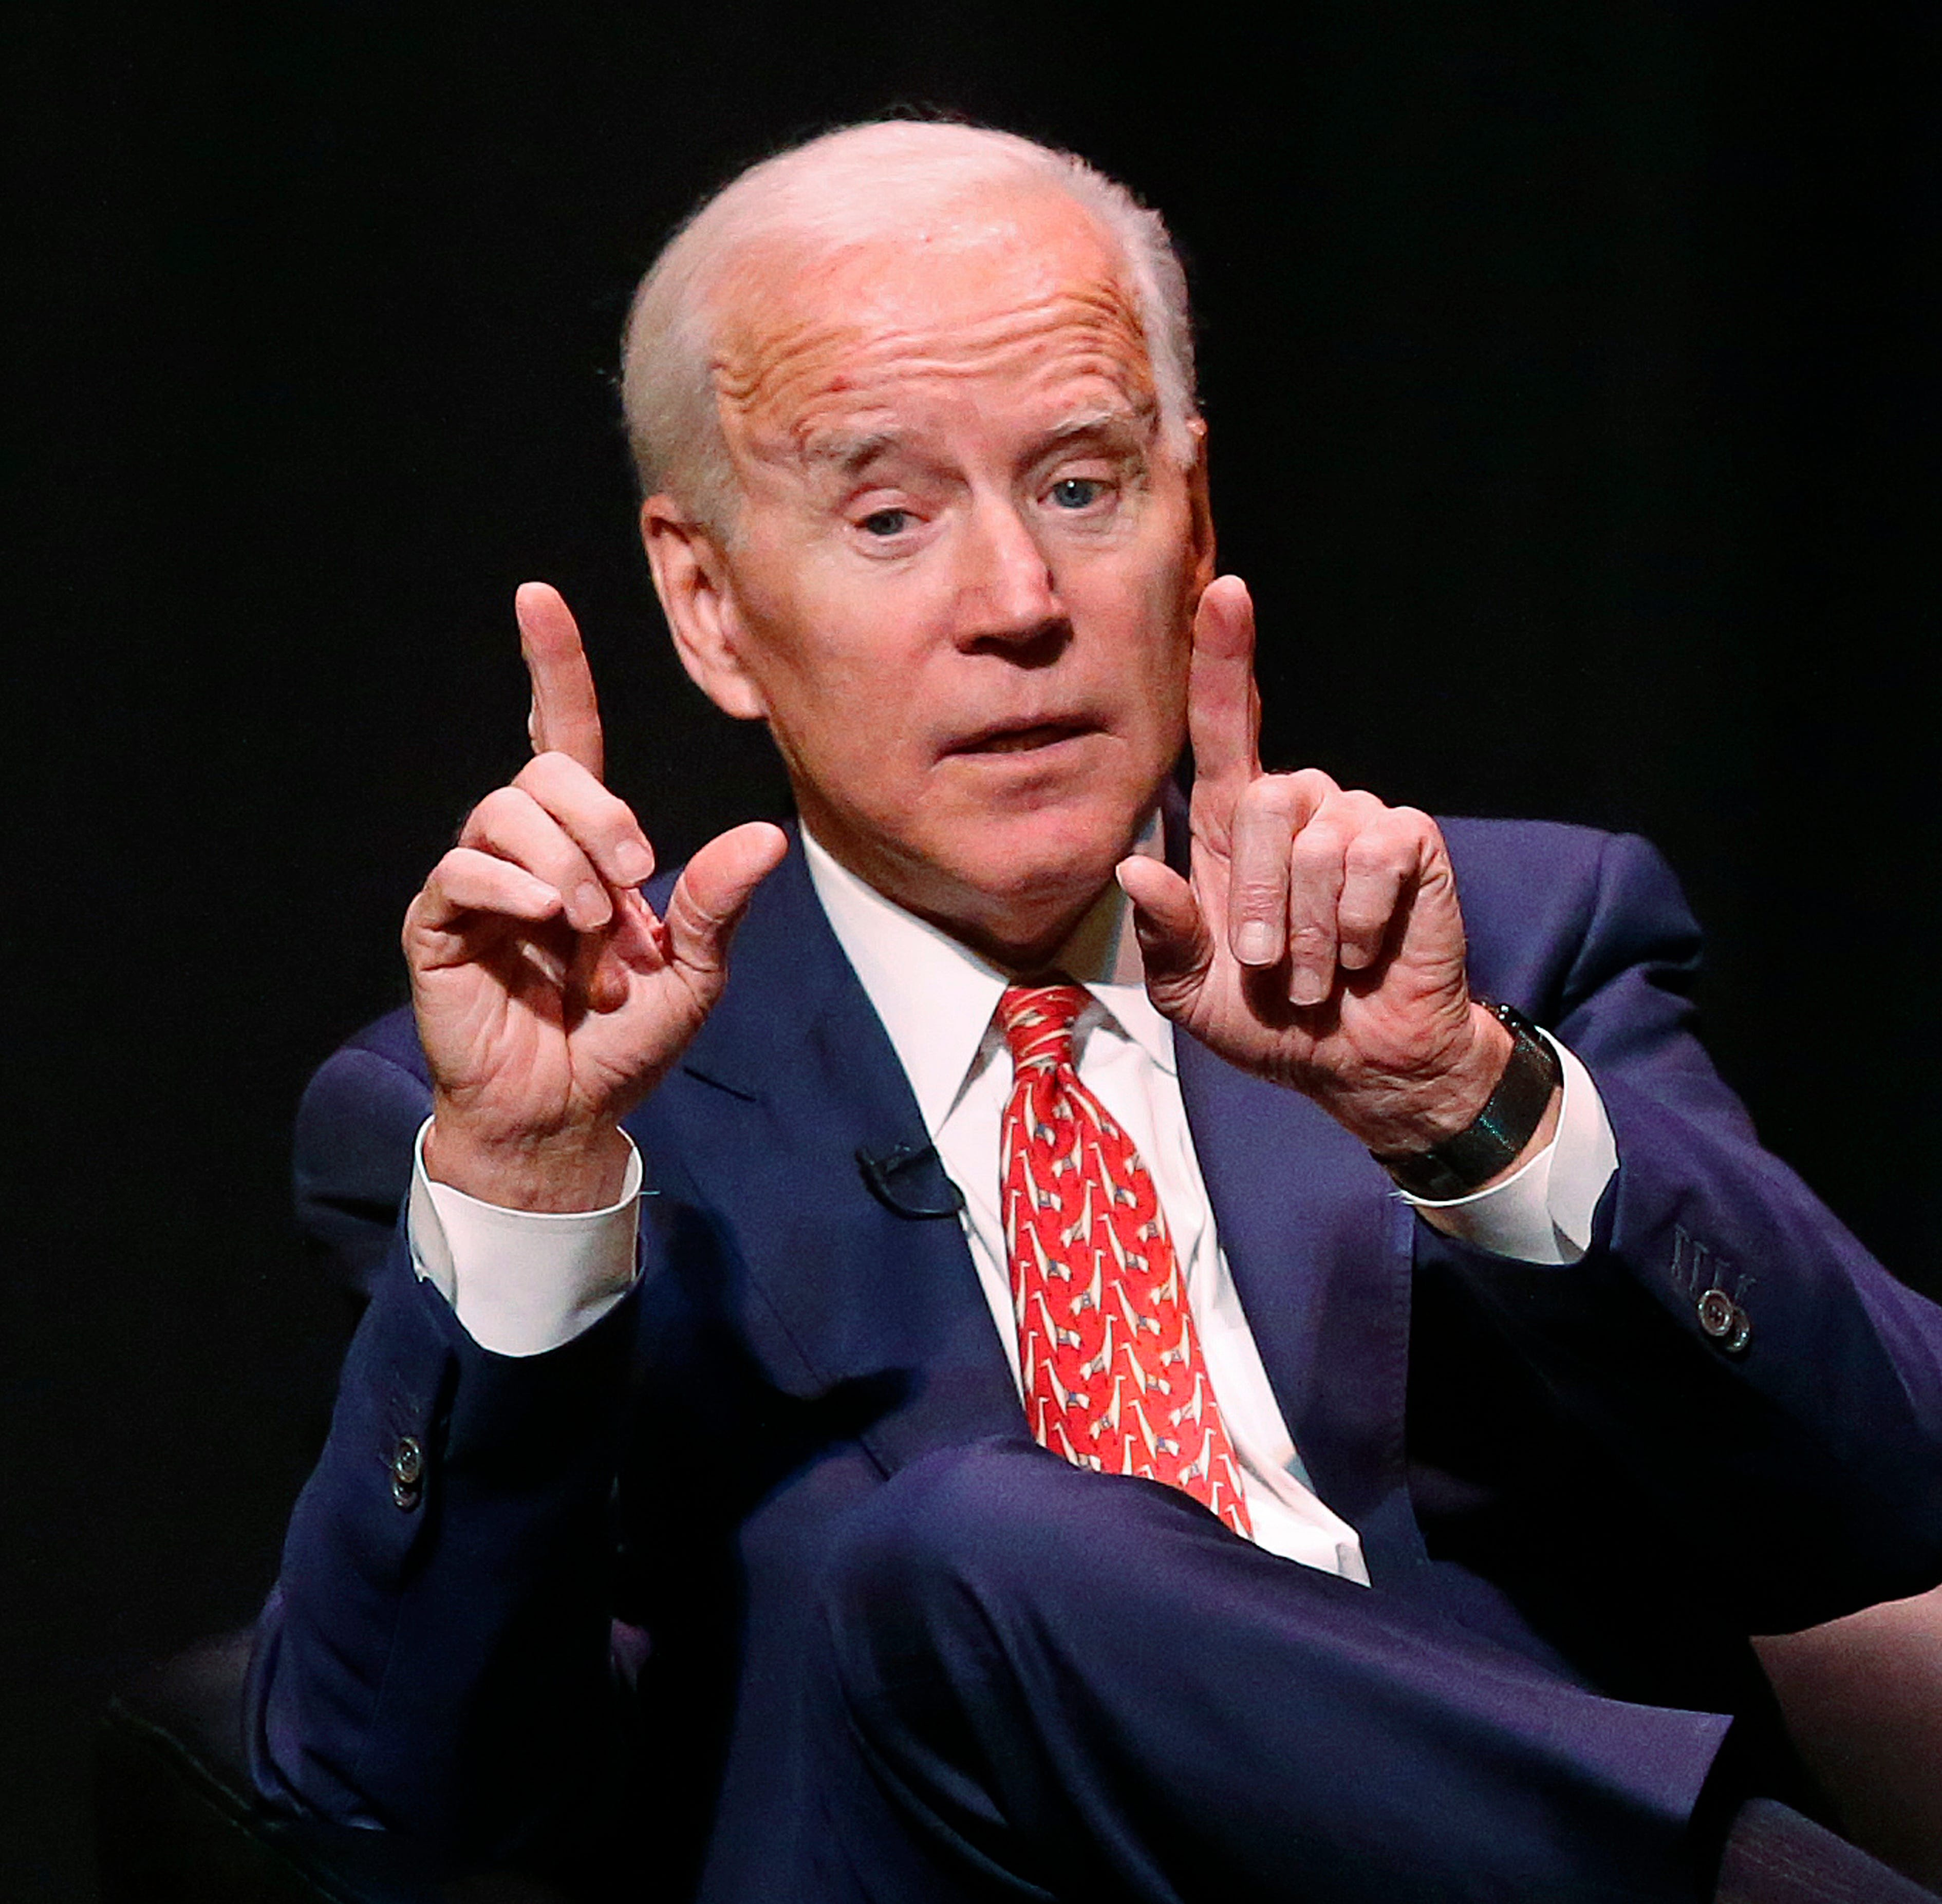 Joe Biden enters race for president among the Democratic frontrunners